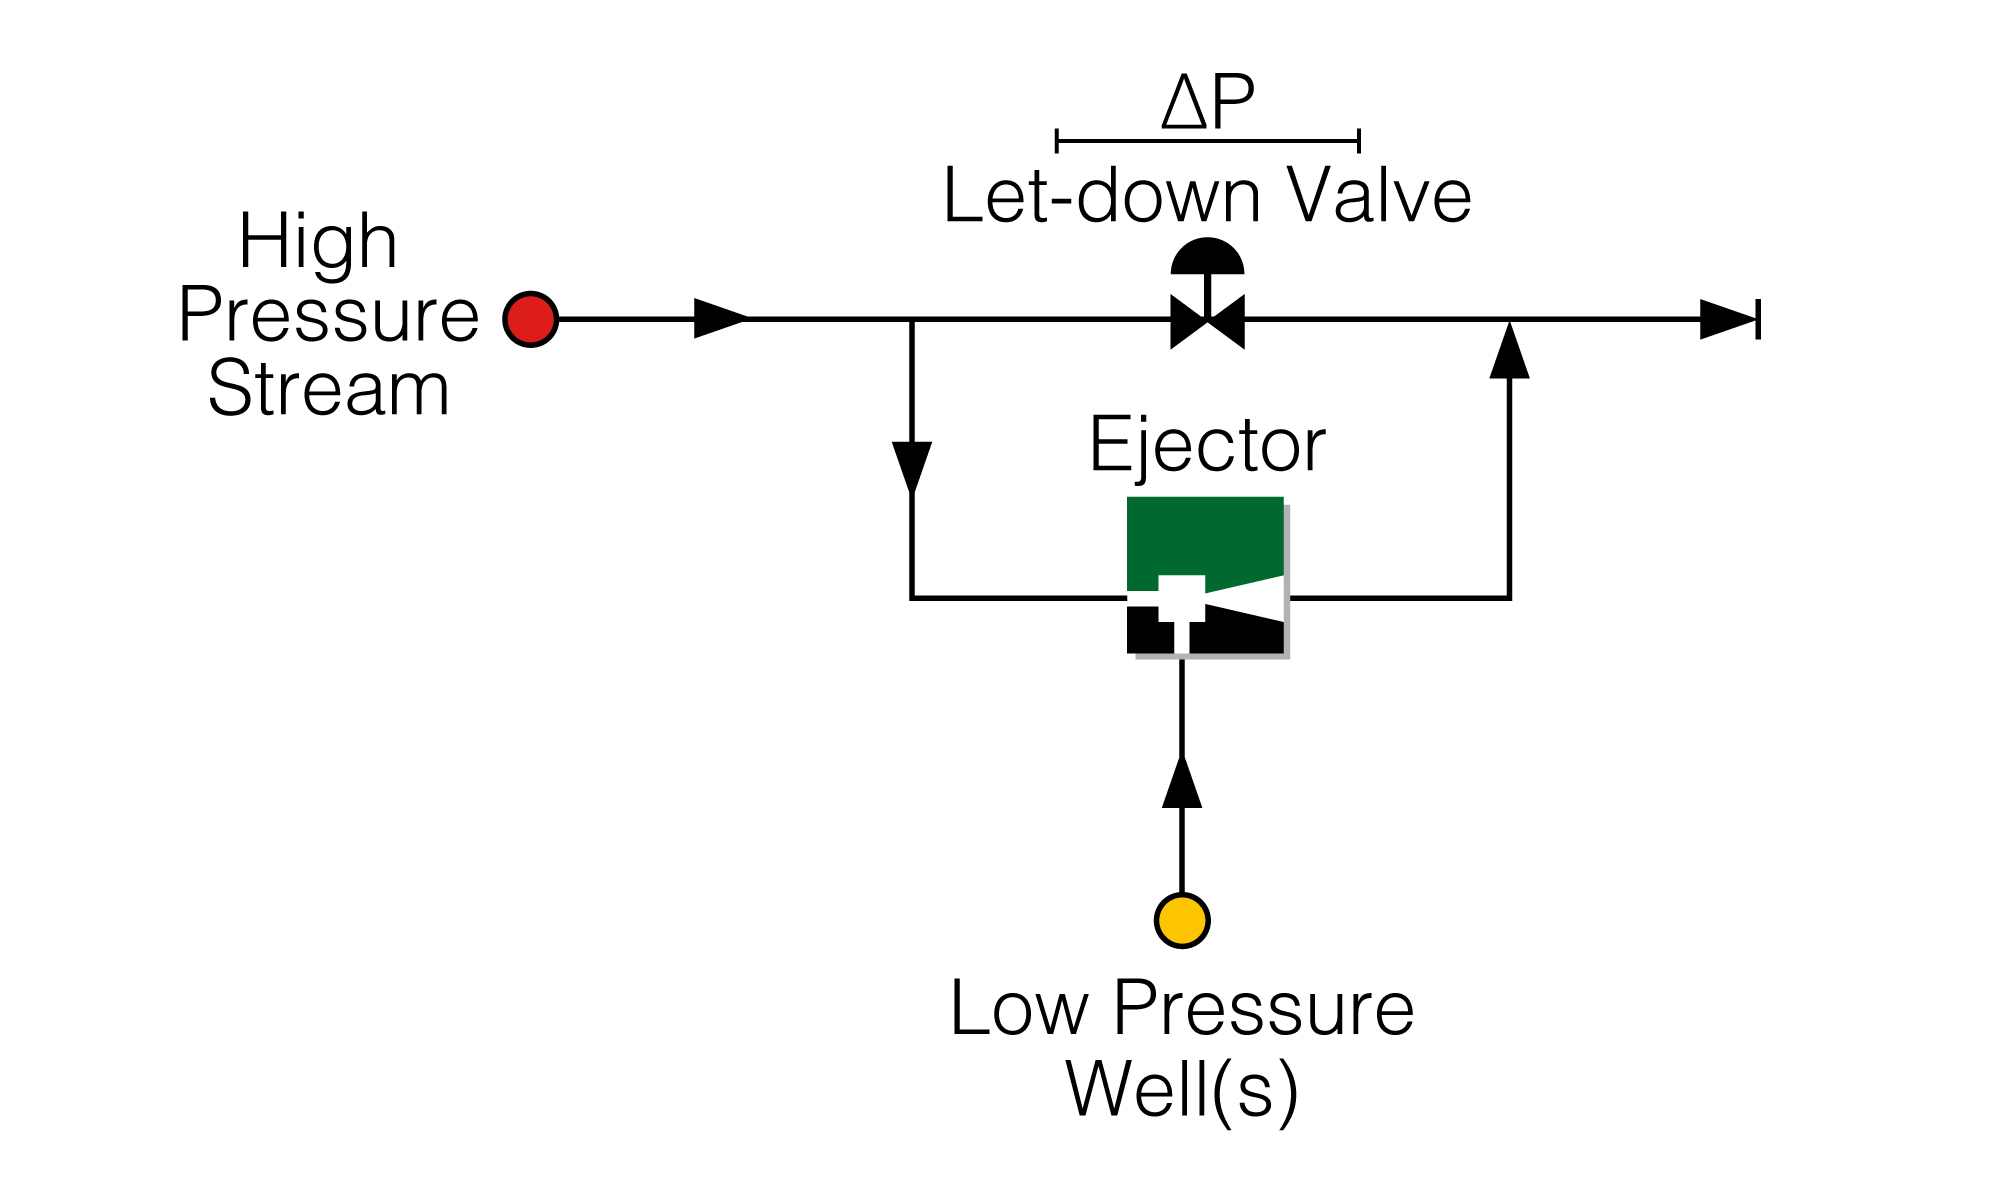 Production Boosting Ejector with Motive Pressure Let Down